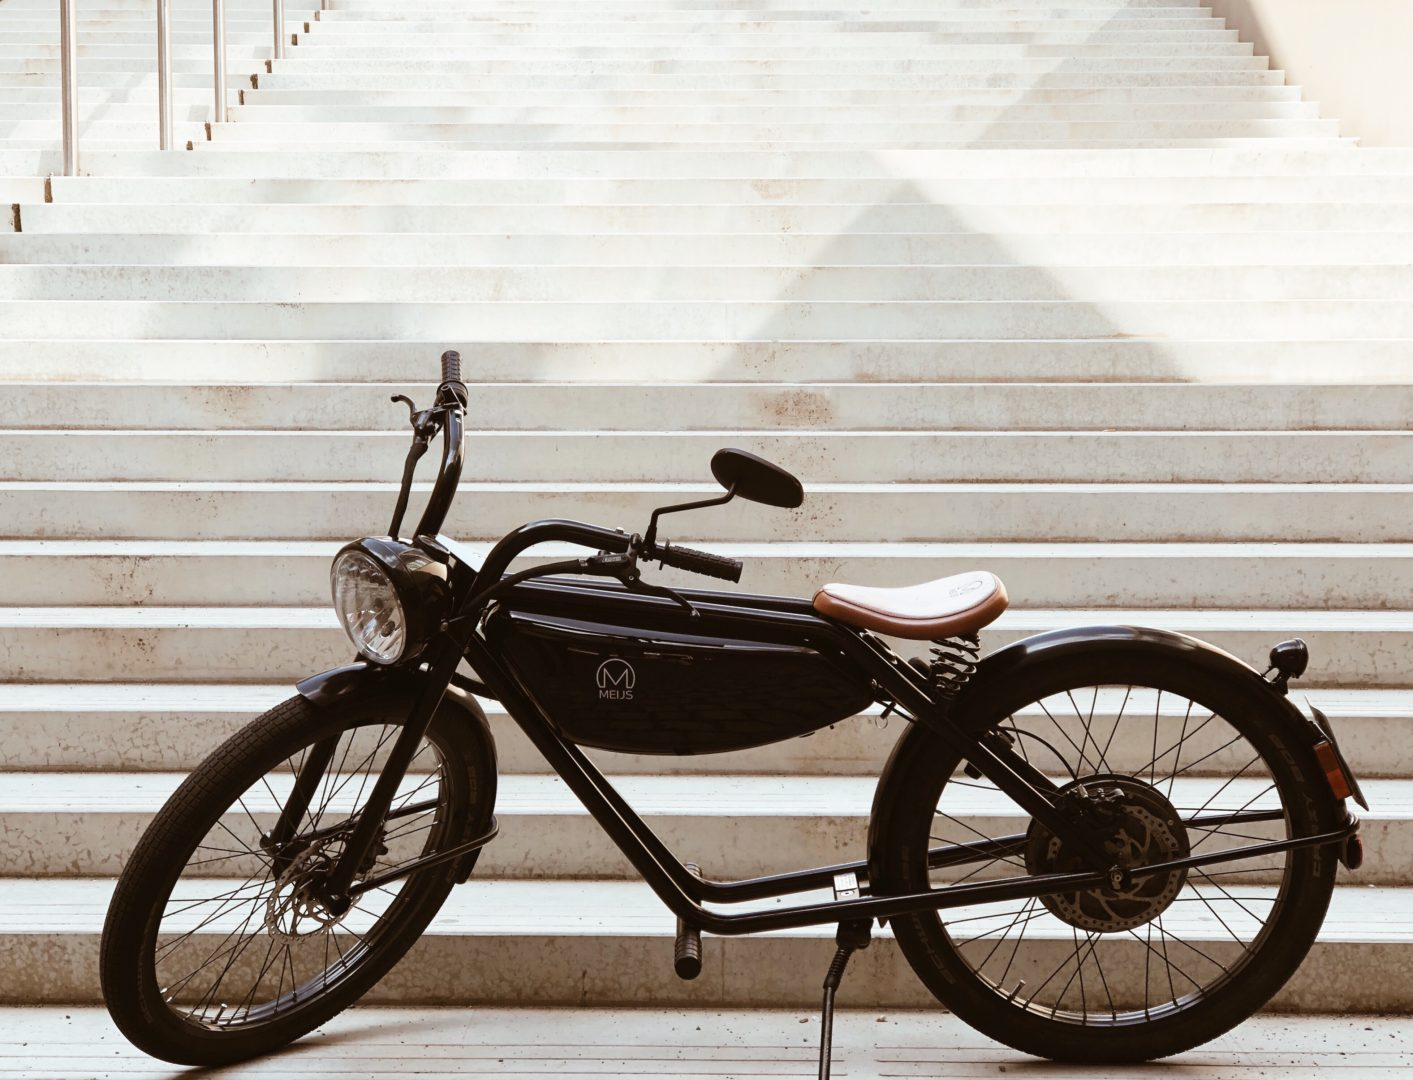 MEIJS Motorman - the 100% electric moped from Maastricht